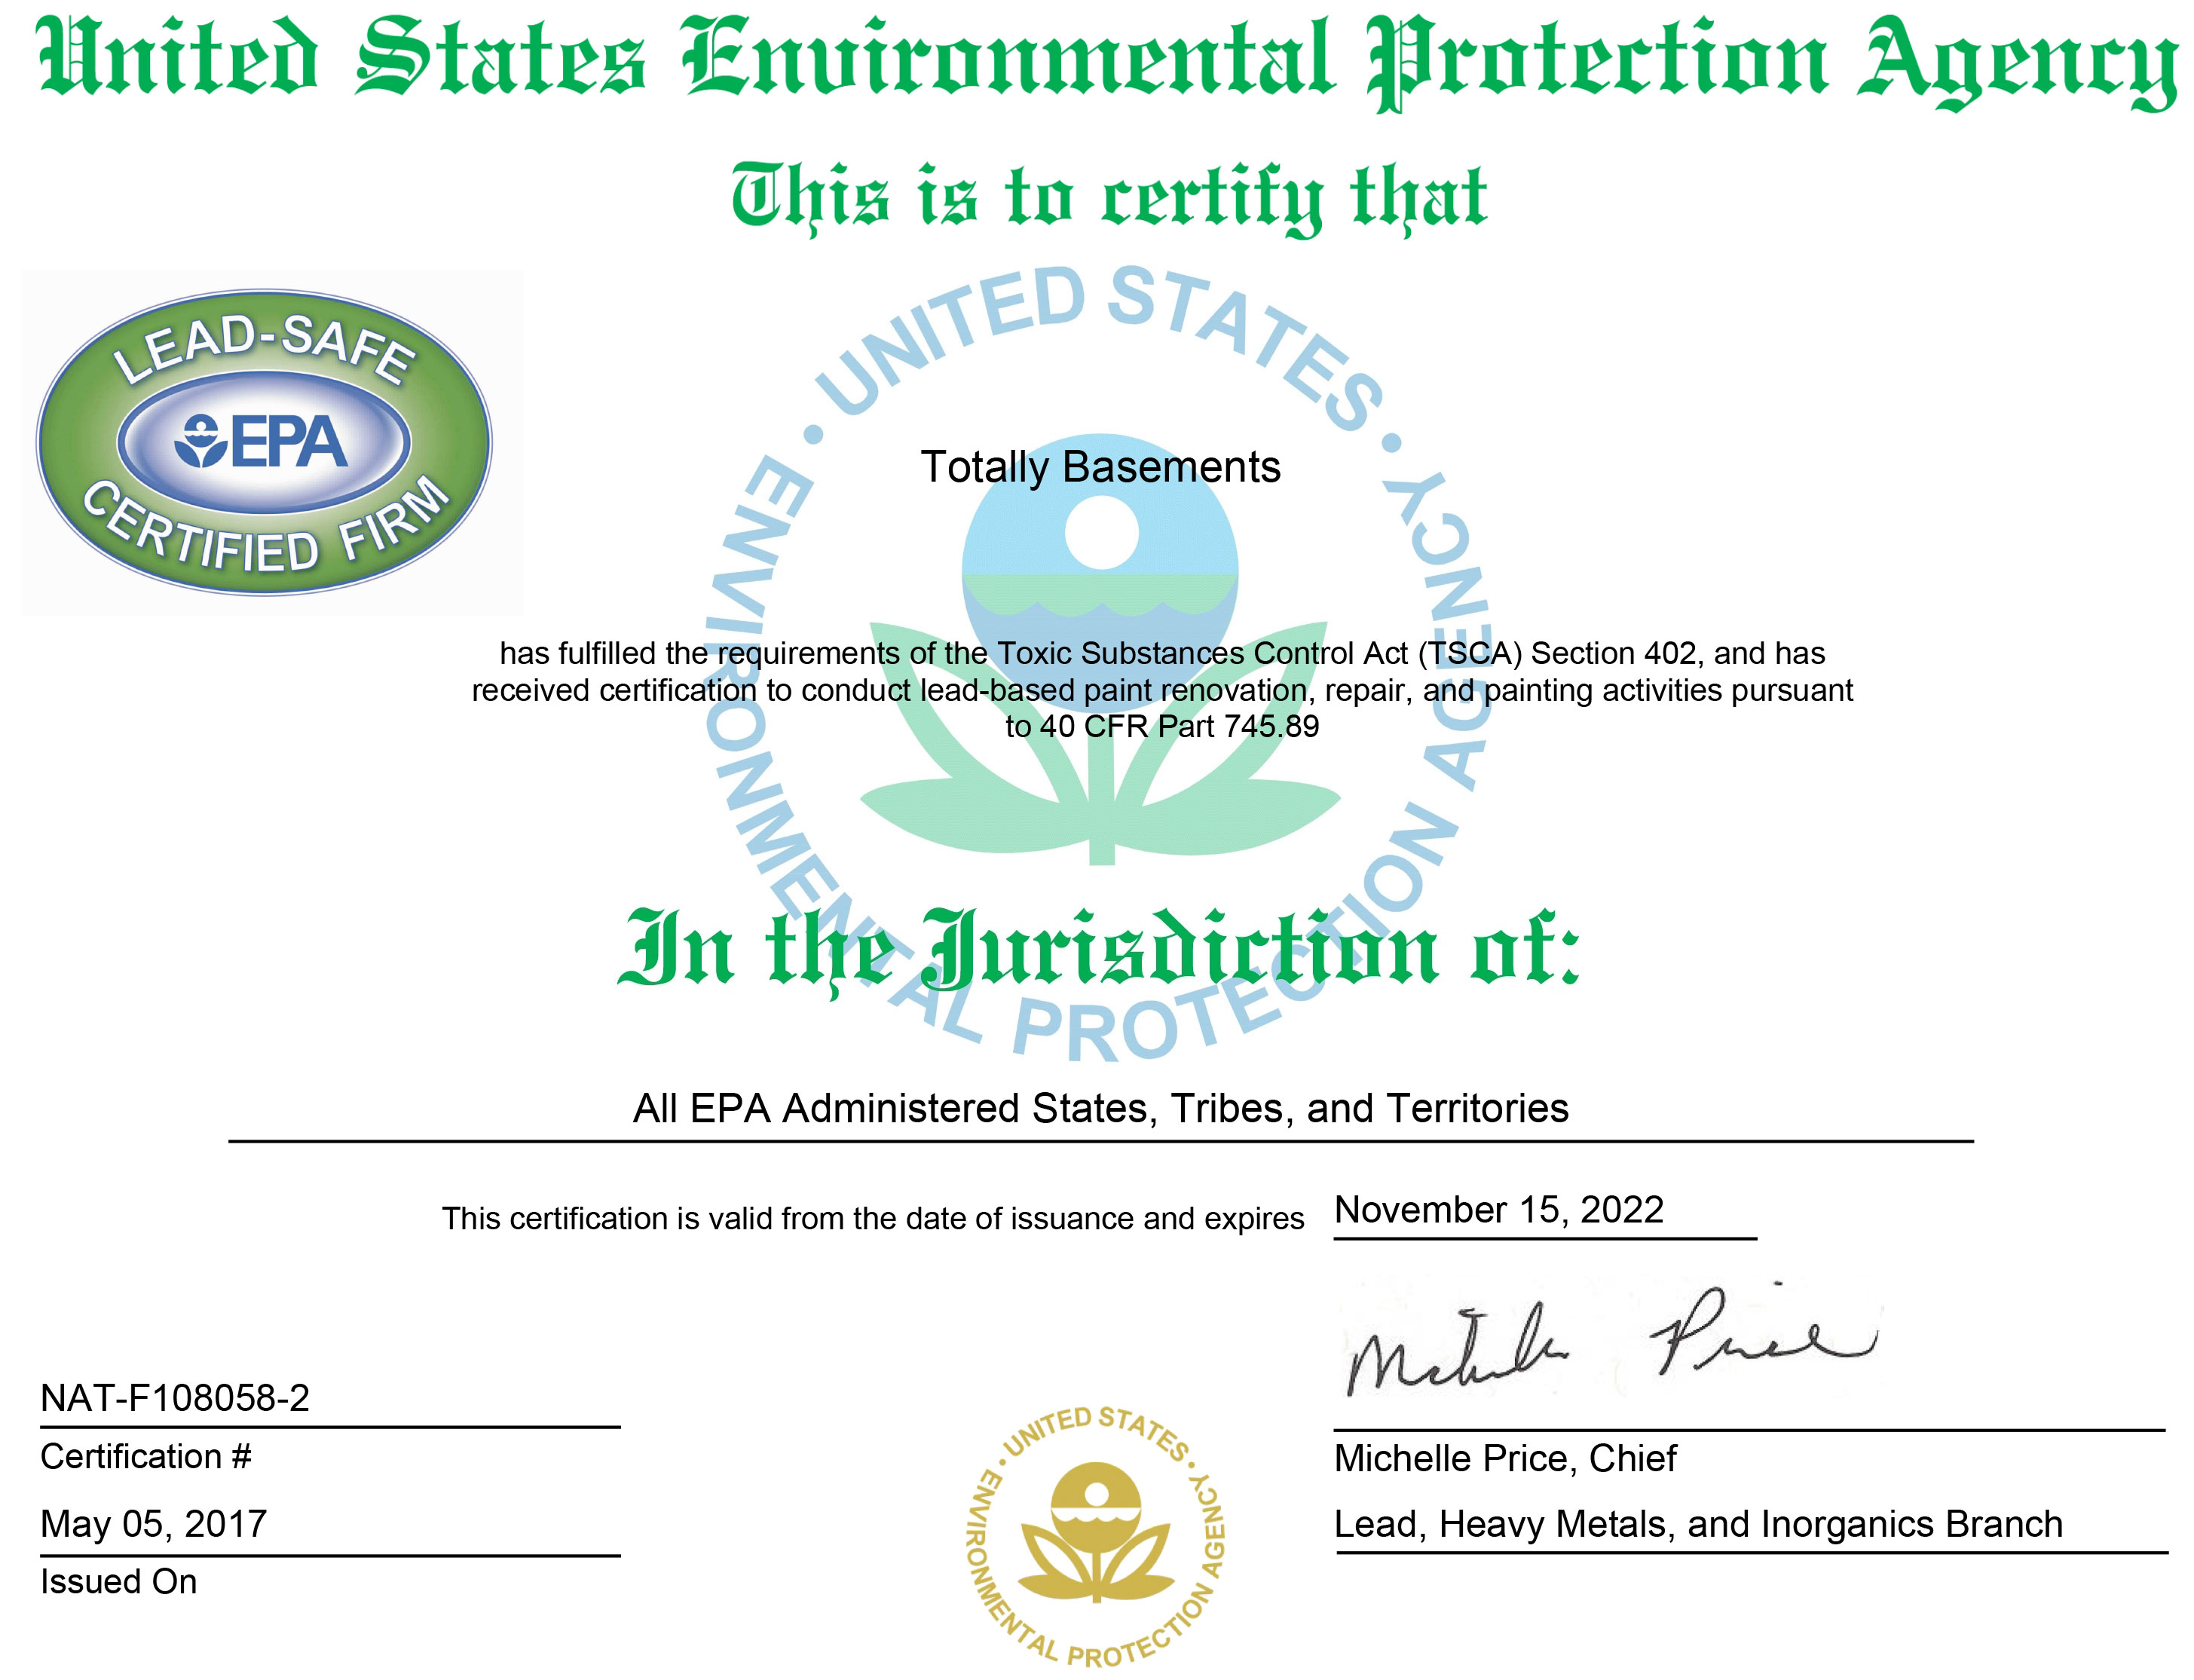 The Basic Companies Lead Remediation Certificate The Basic